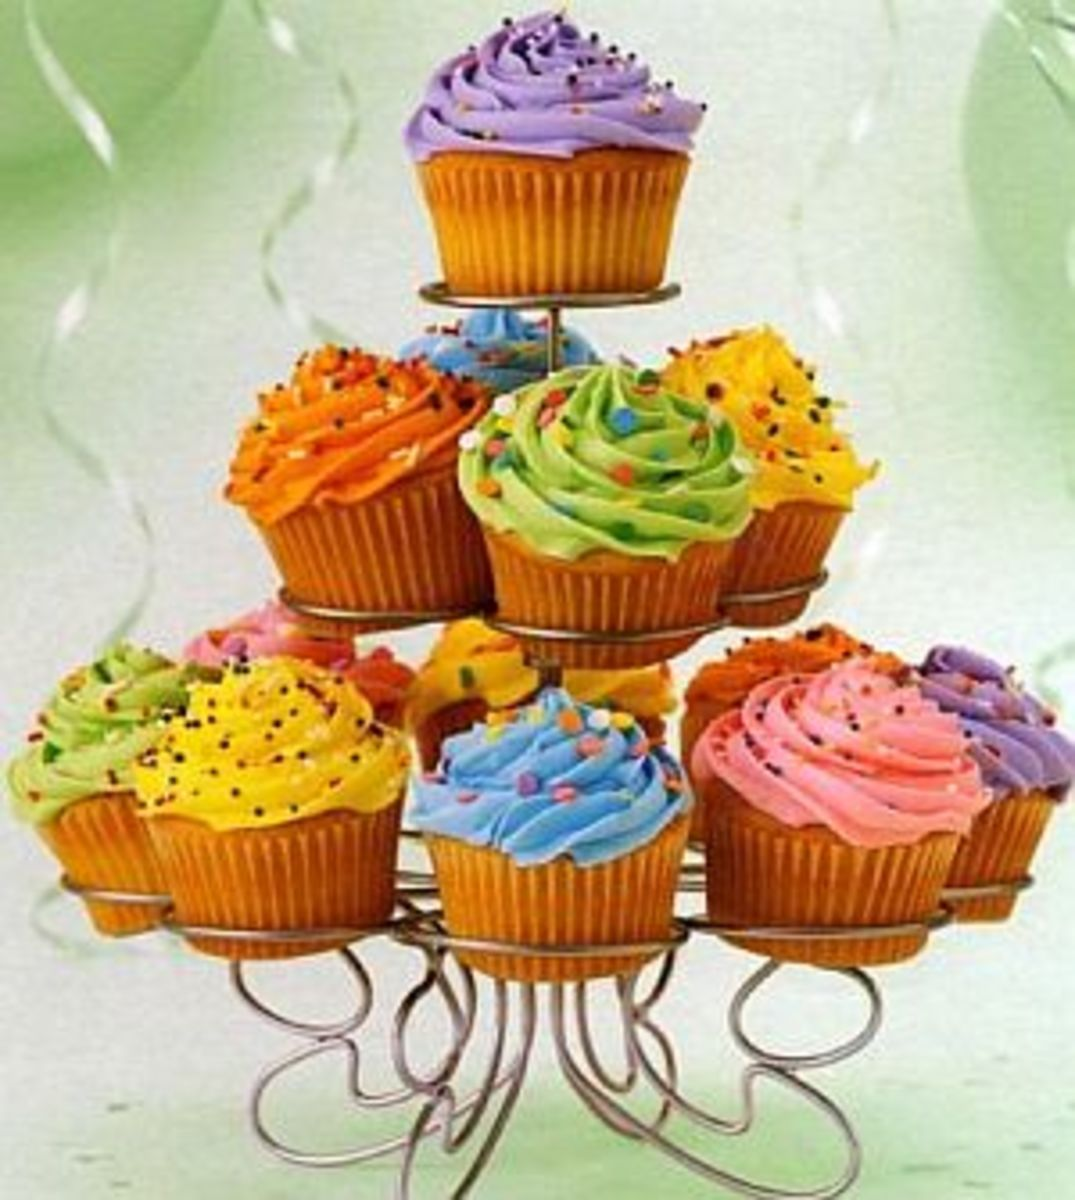 Introduction to Cupcakes